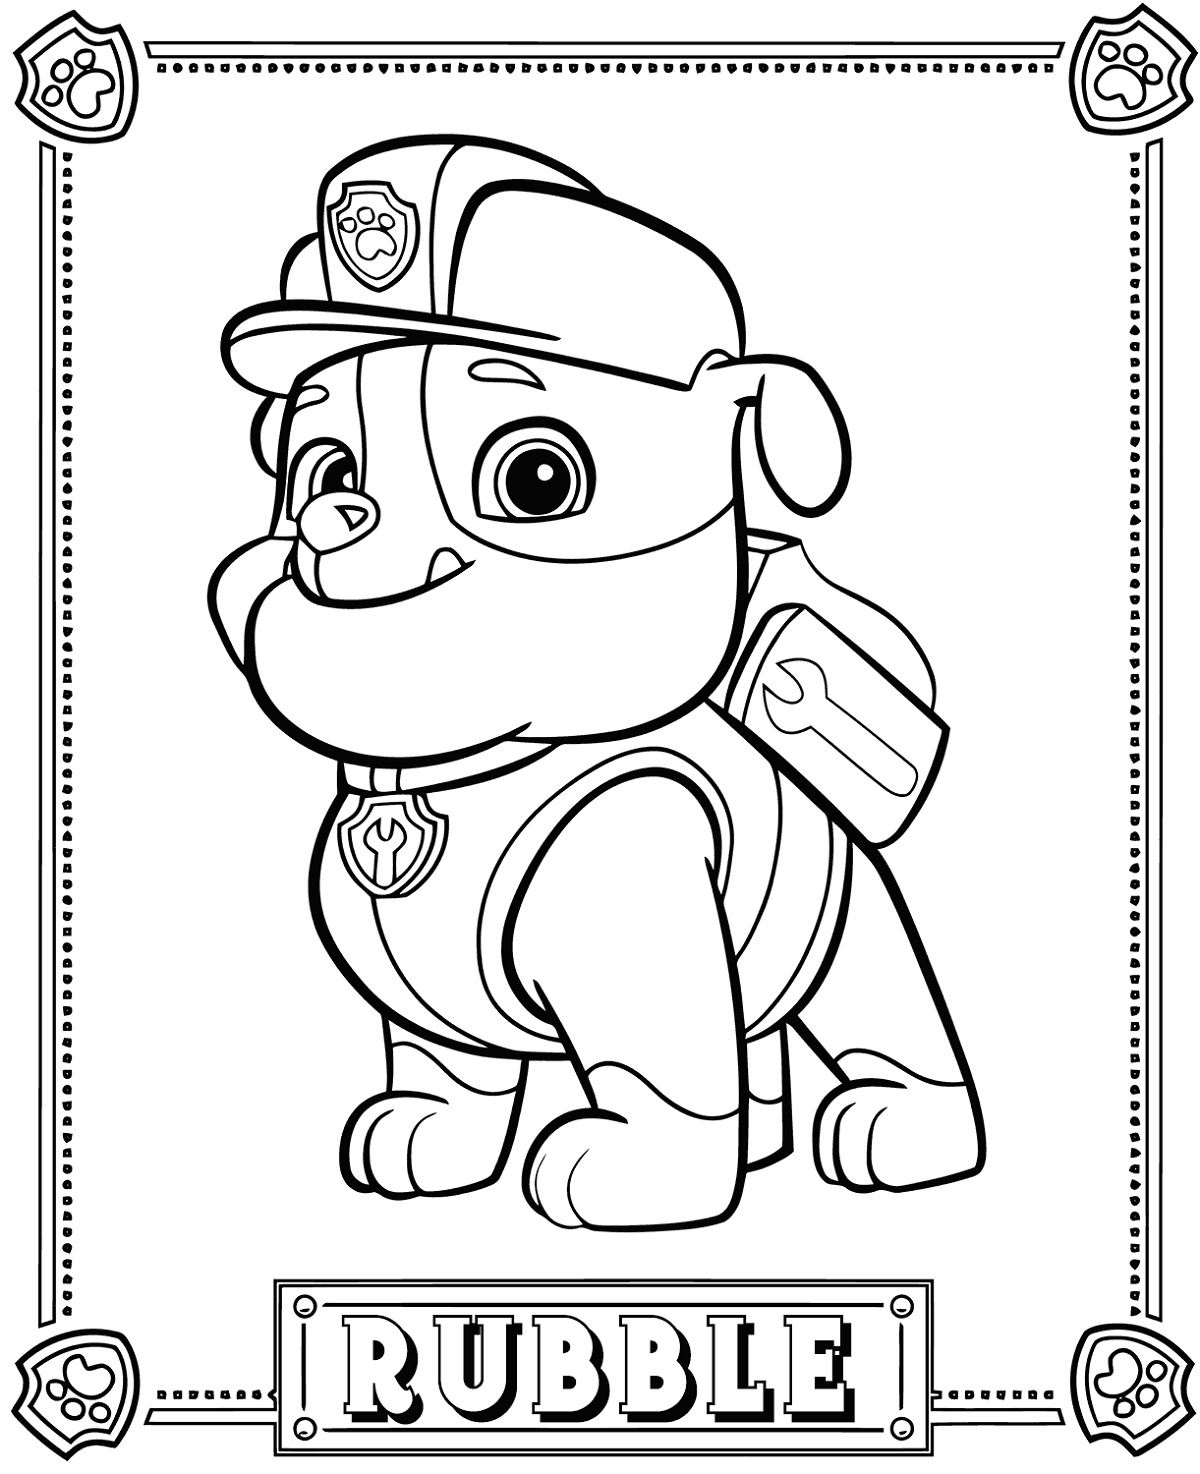 Free Printable Paw Patrol Coloring Pages Rubble